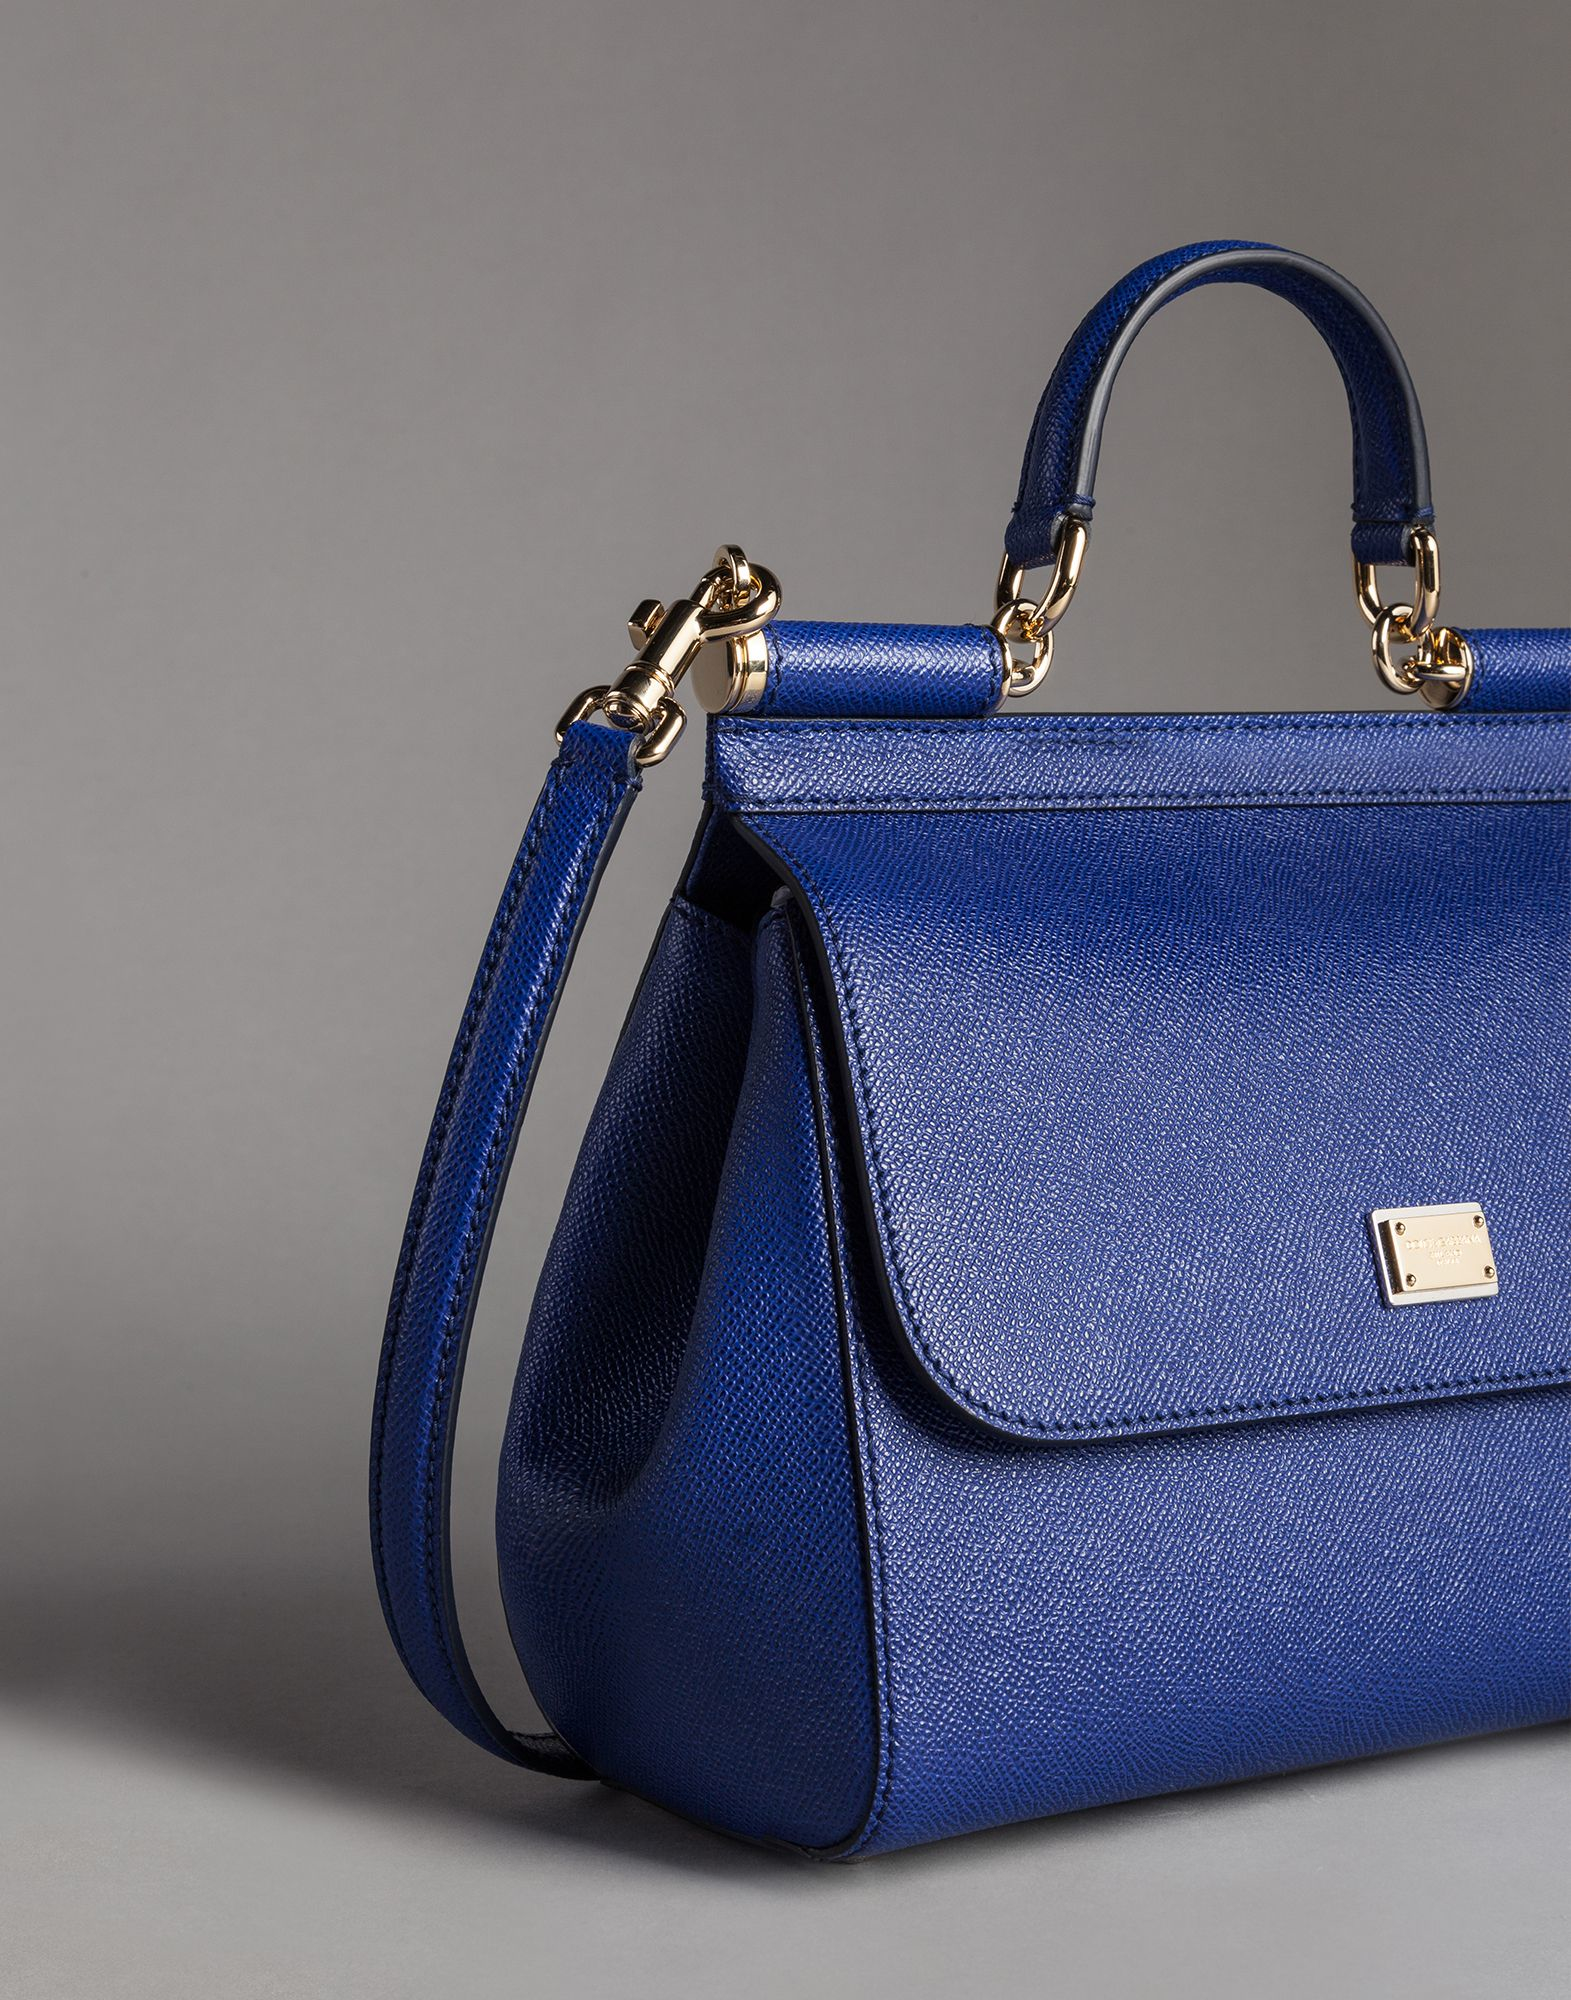 fd57dcf999 Lyst - Dolce   Gabbana Medium Dauphine Calfskin Sicily Bag in Blue